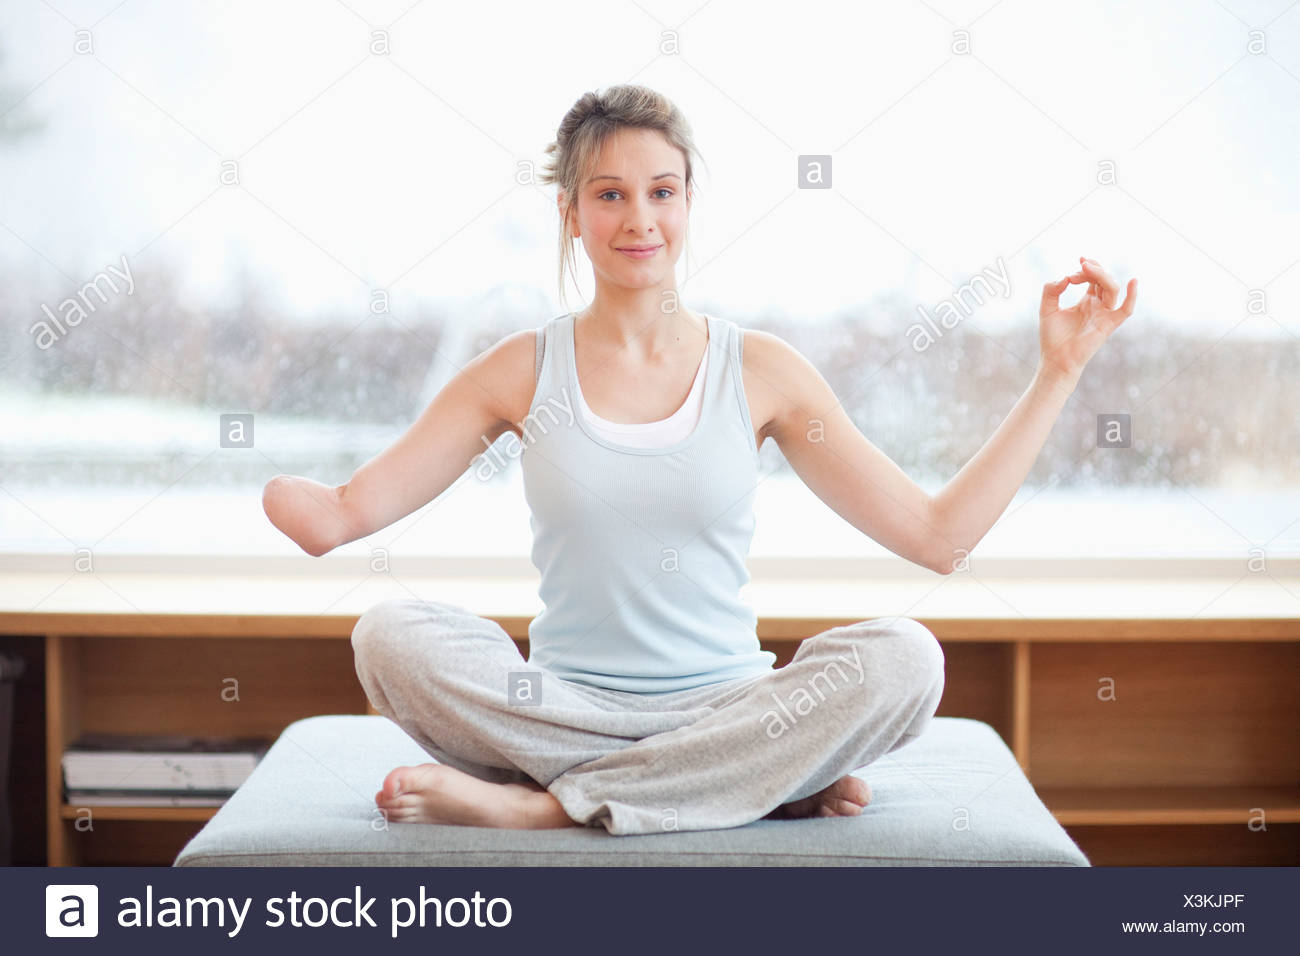 Young woman with amputee arm in yoga pose - Stock Image